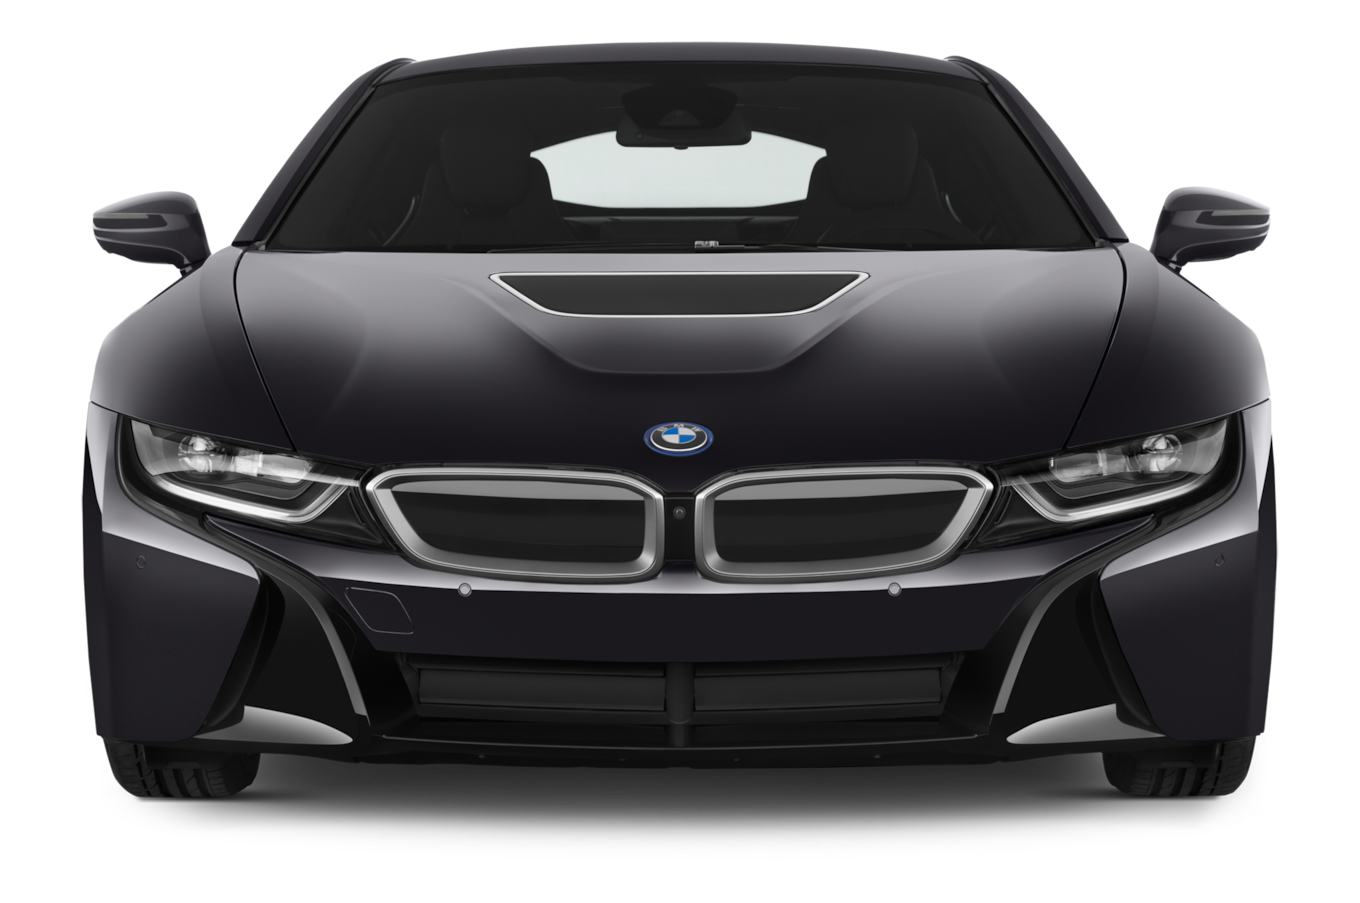 Bmw front png. Car i view transprent